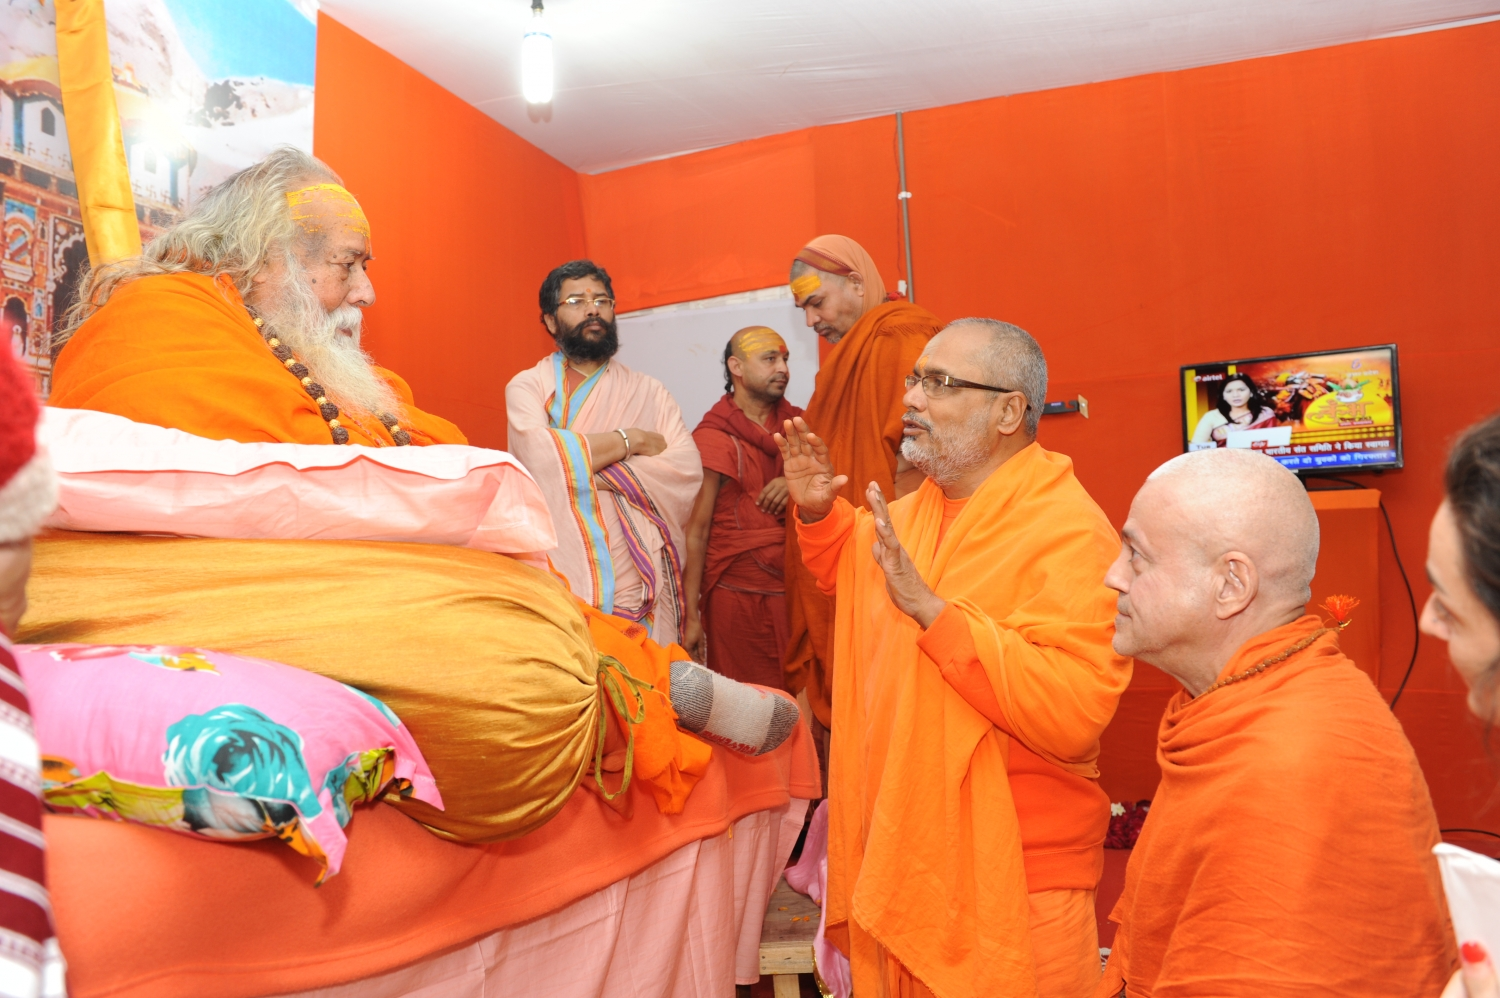 Meeting with Jagadguru Shankaracharya Shri Swami Swaroopananda Saraswati Ji Maharaj from Dwarka Sharada  and Badri Jyotish Peetham - Mahá Kumbhamela, 2013, February